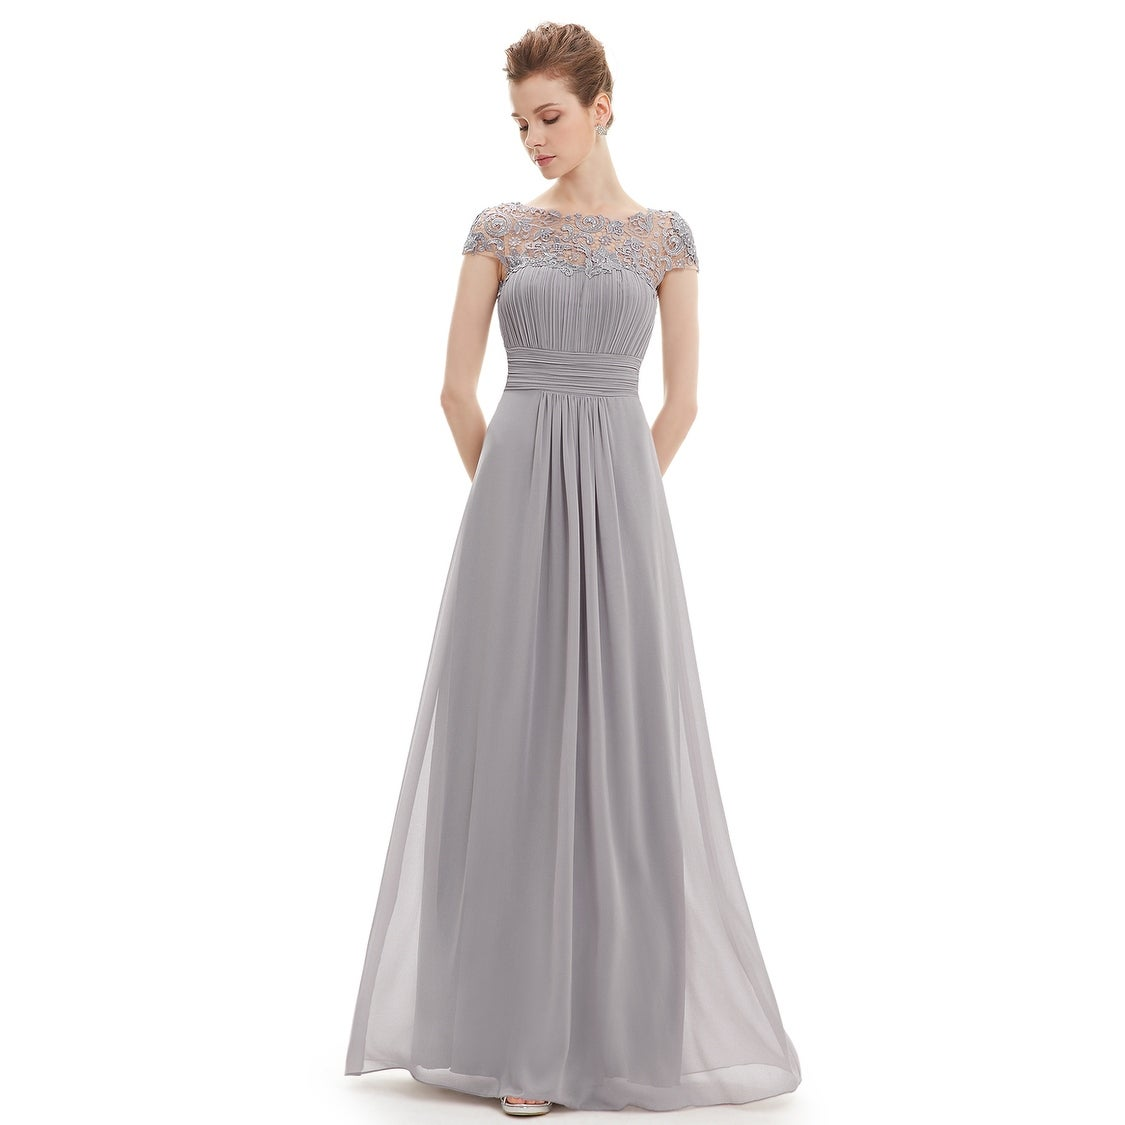 bfdd7e24098ae Shop Ever-Pretty Womens Cap Sleeve Lace Neckline Ruched Bust Evening  Dresses 09993 - Ships To Canada - Overstock - 25615372